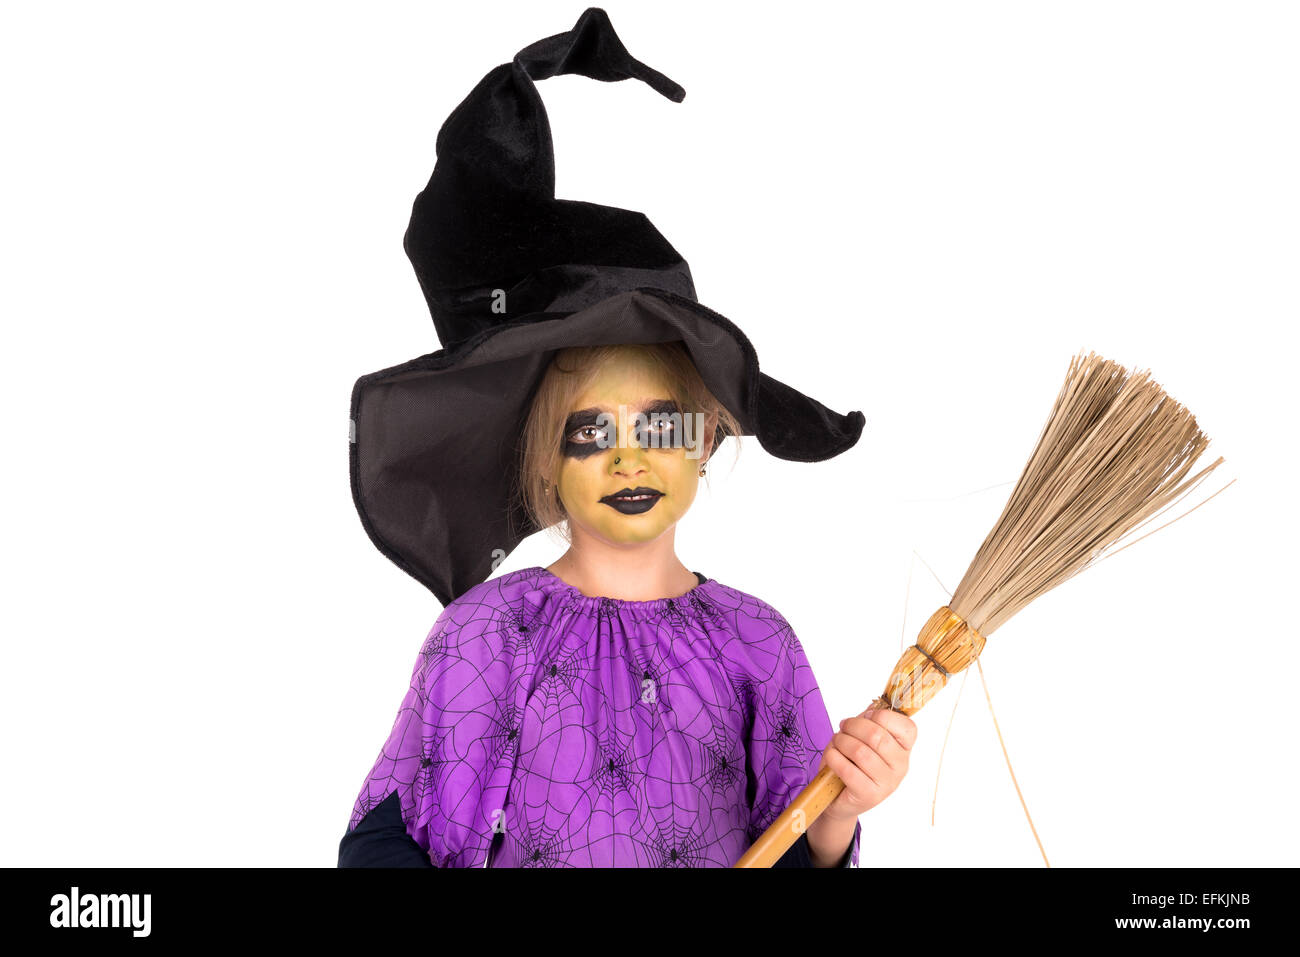 Girl Face Paint Halloween Witch Costume Stock Photos & Girl Face ...